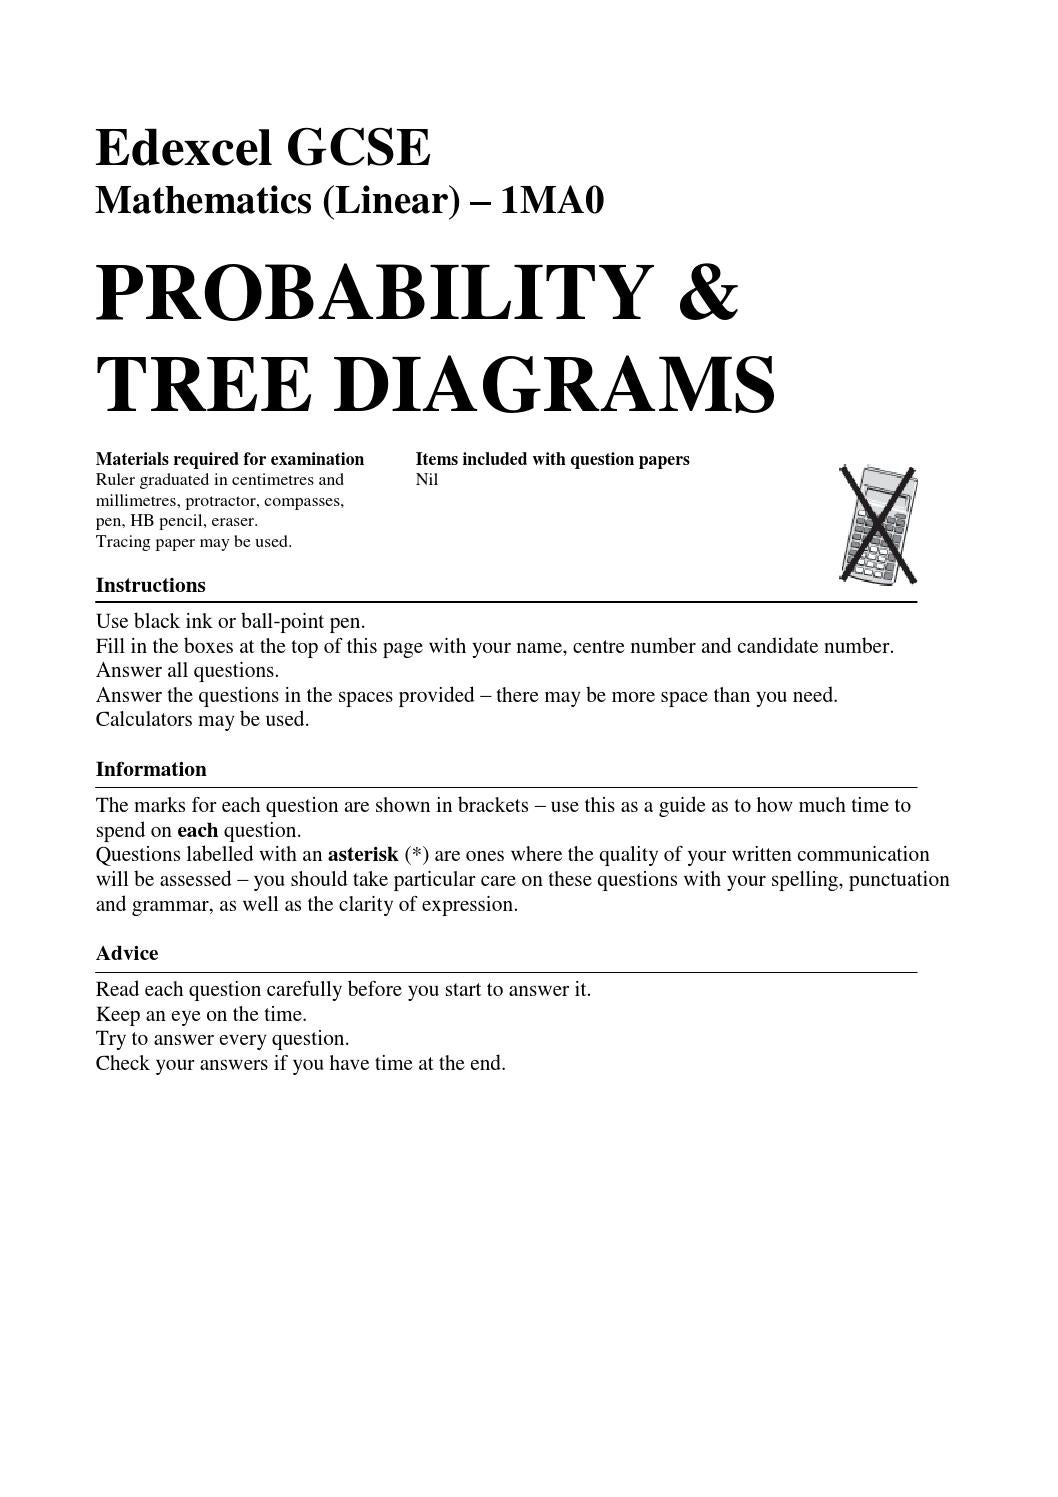 Patterns In Probability Trees Manual Guide